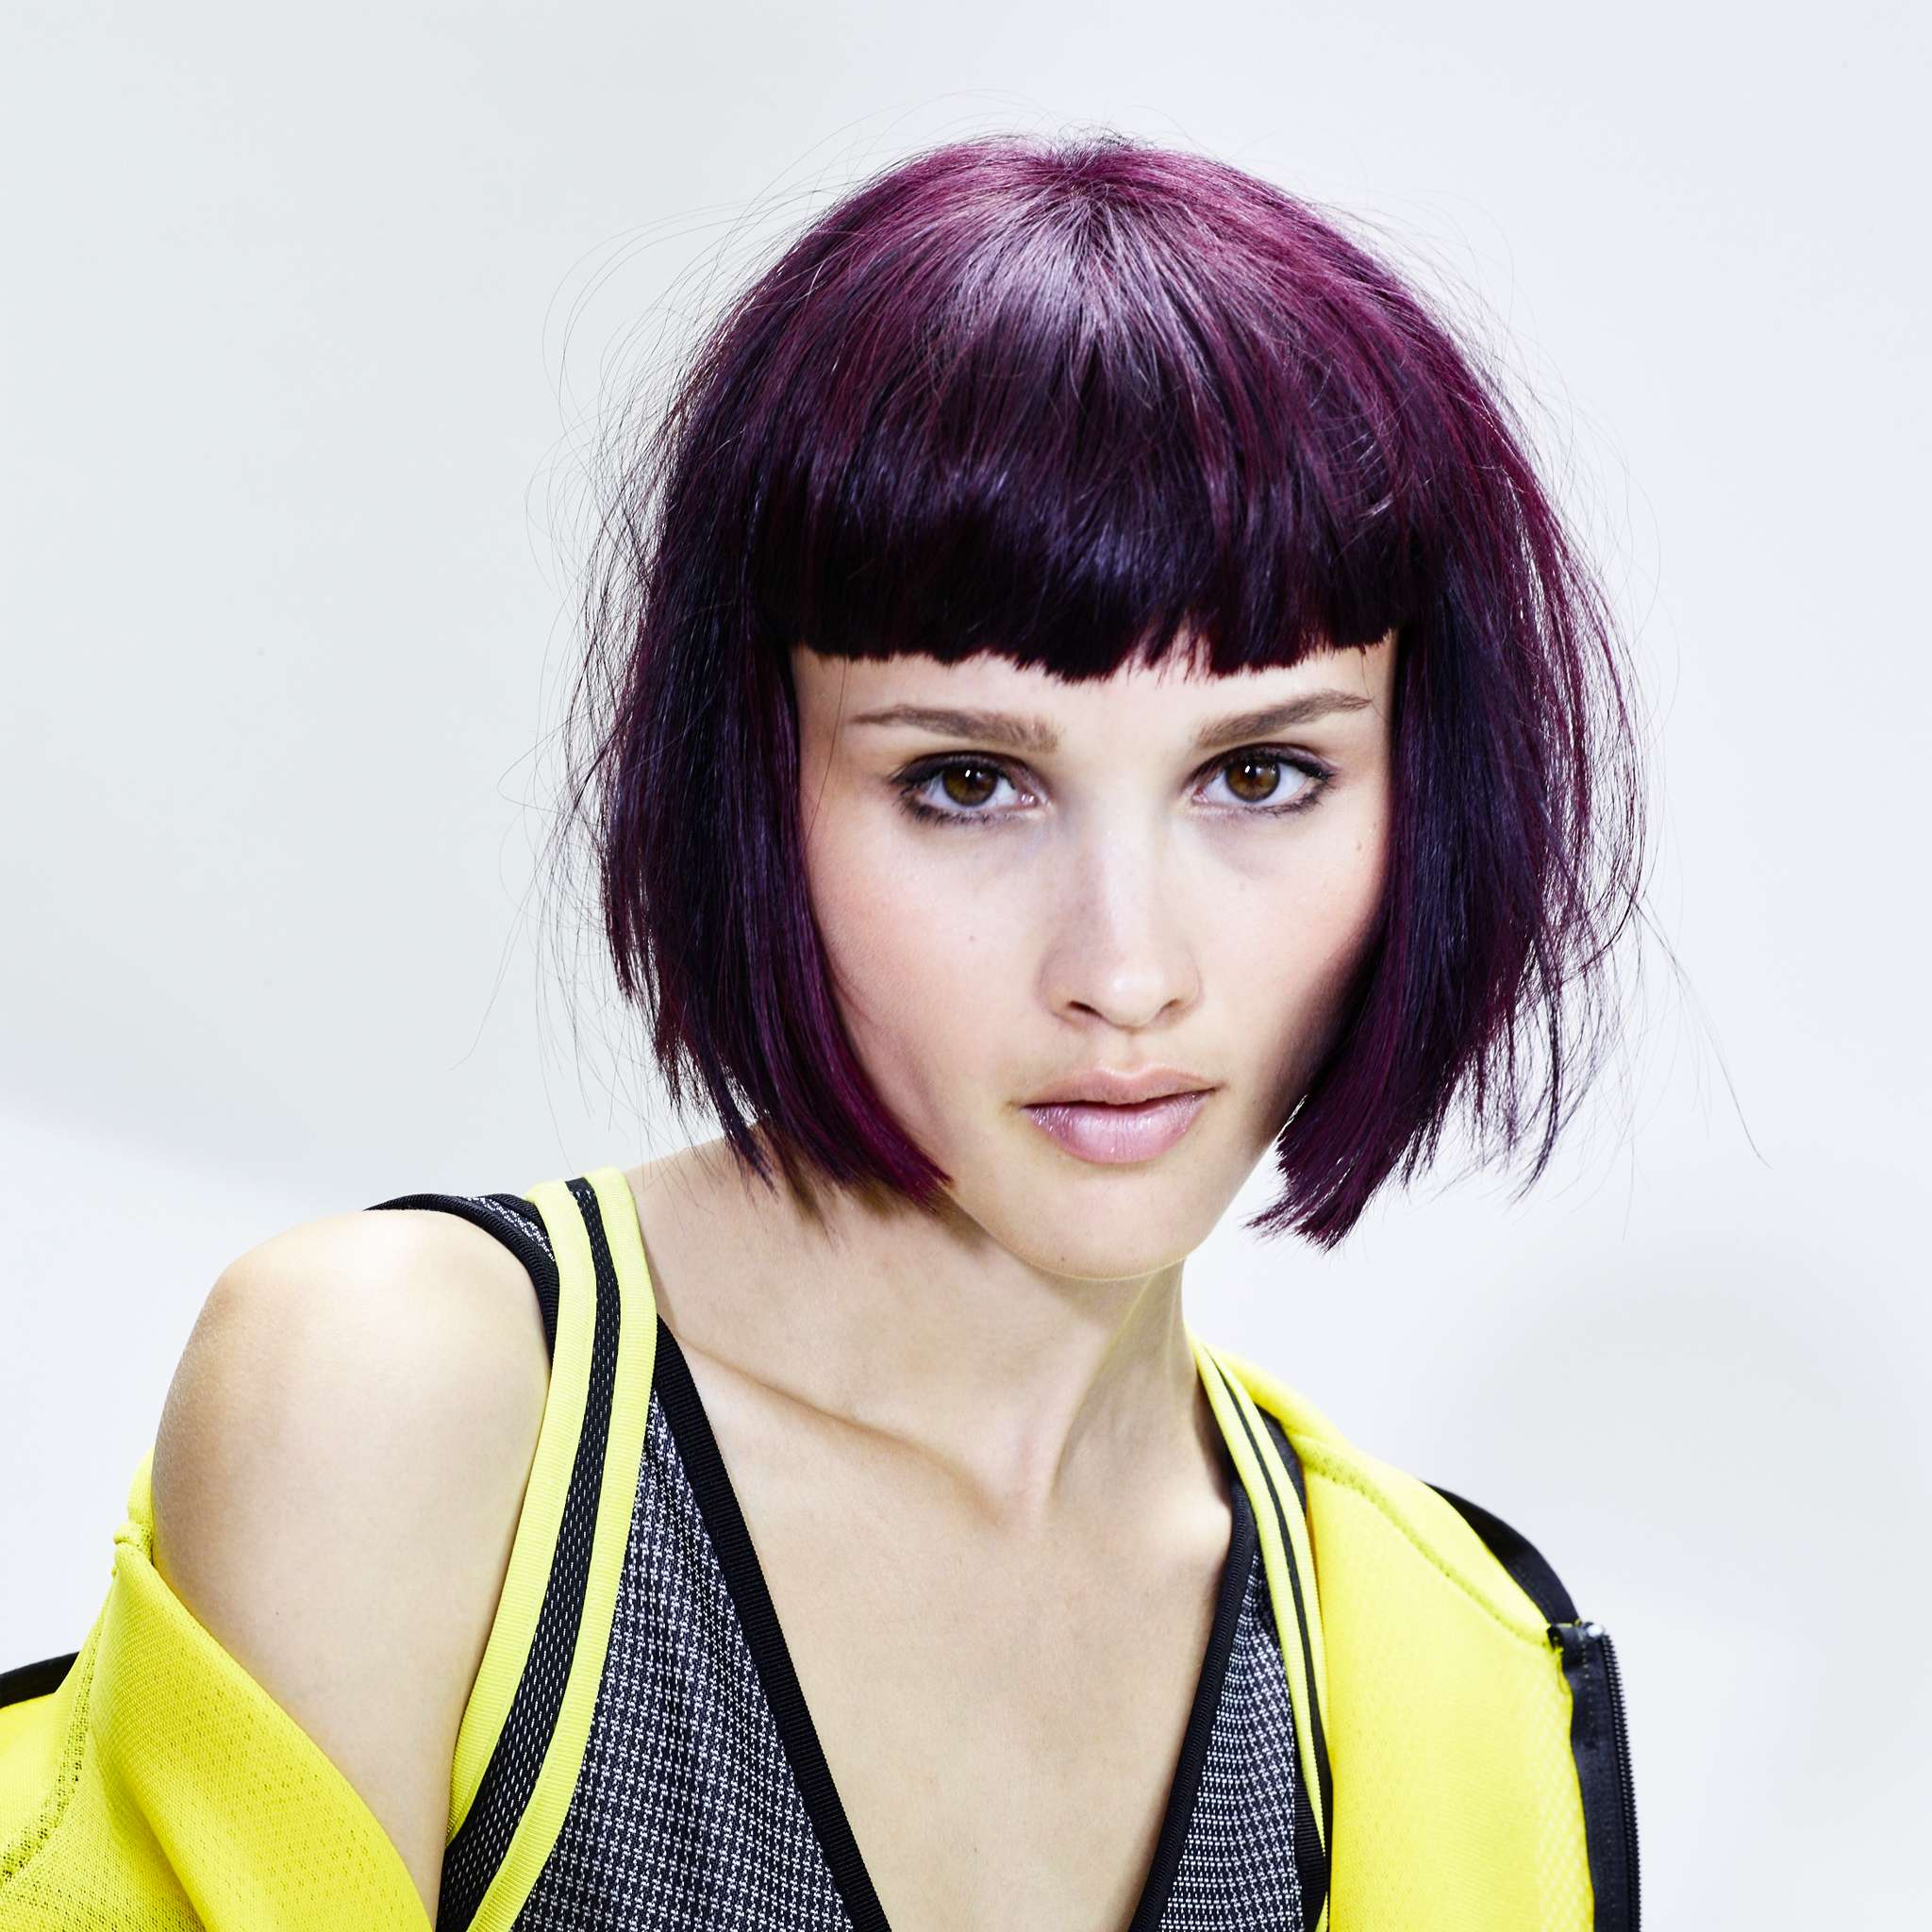 SmootheningMask_2